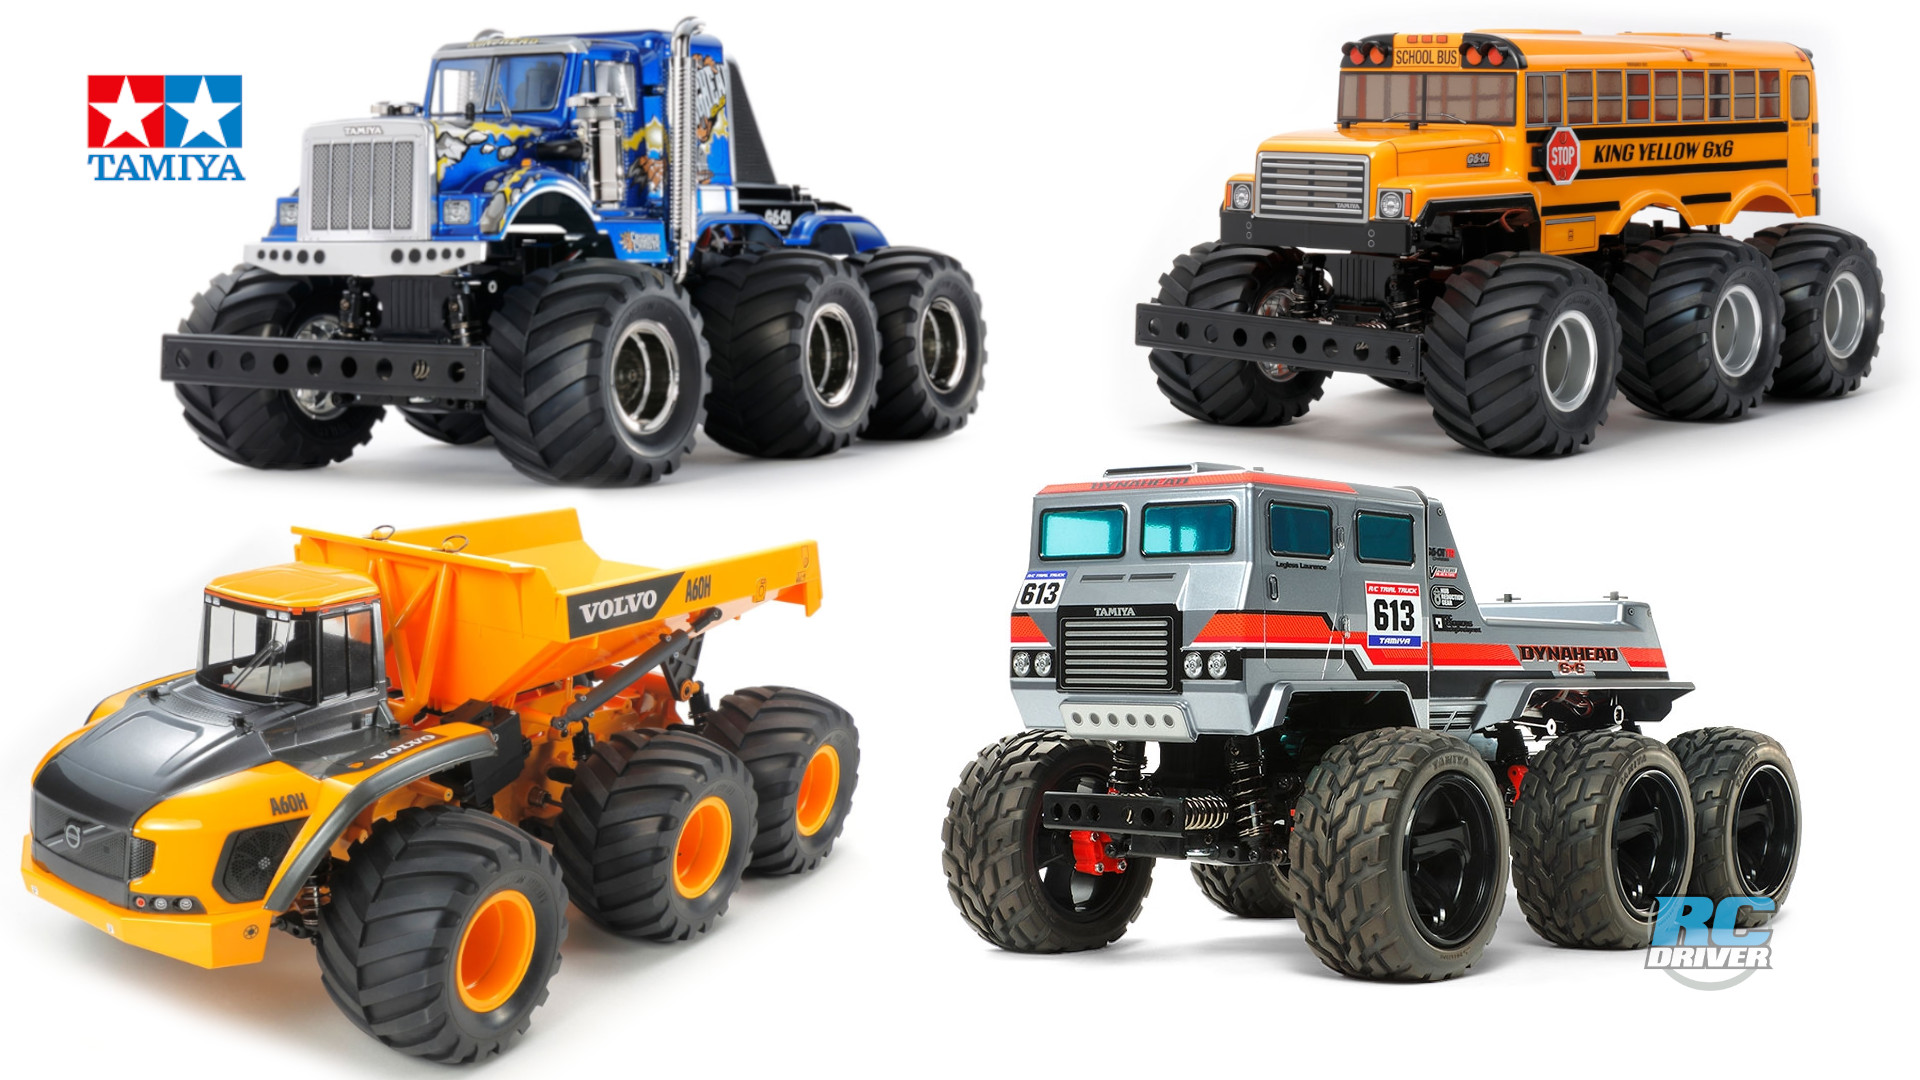 Tamiya 6x6 truck lineup, a closer look